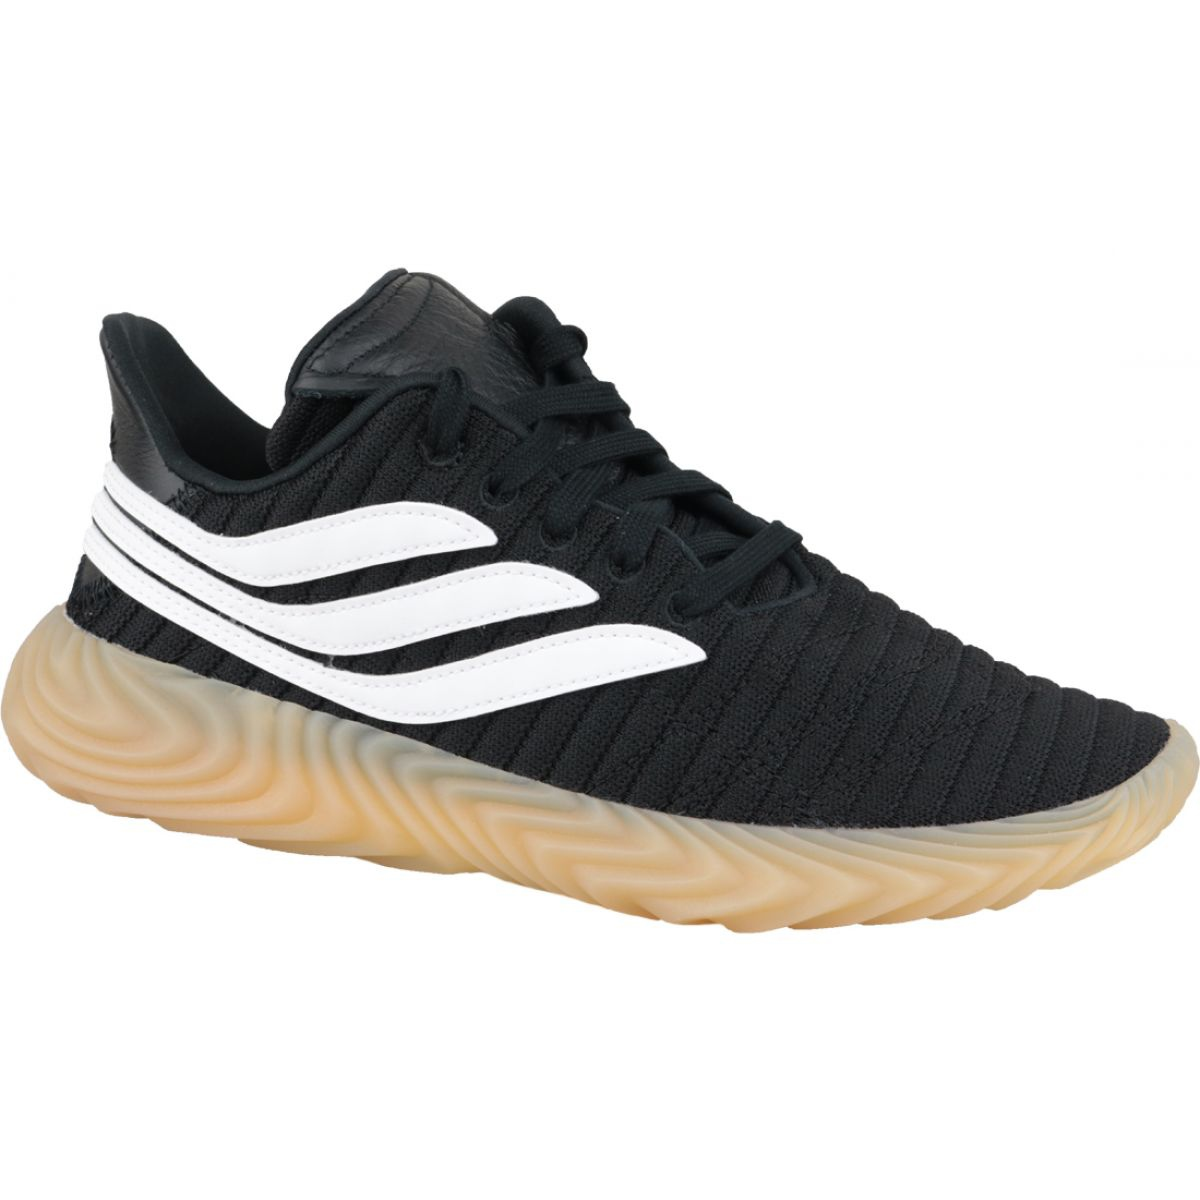 Thoughts on the Adidas Sobakov? : Sneakers | Adidas, Adidas